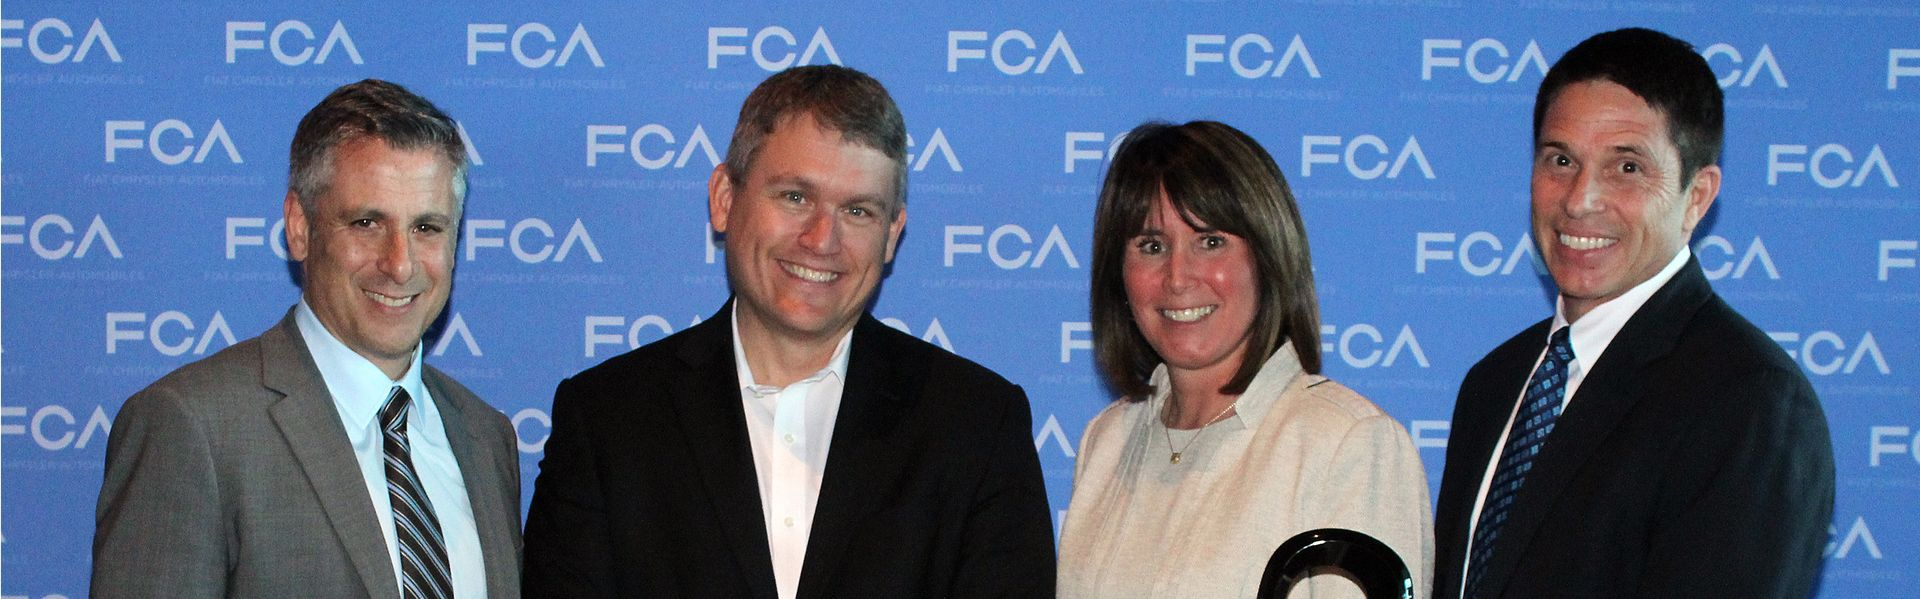 Xerox Named Services Quality Supplier of Year by FCA US